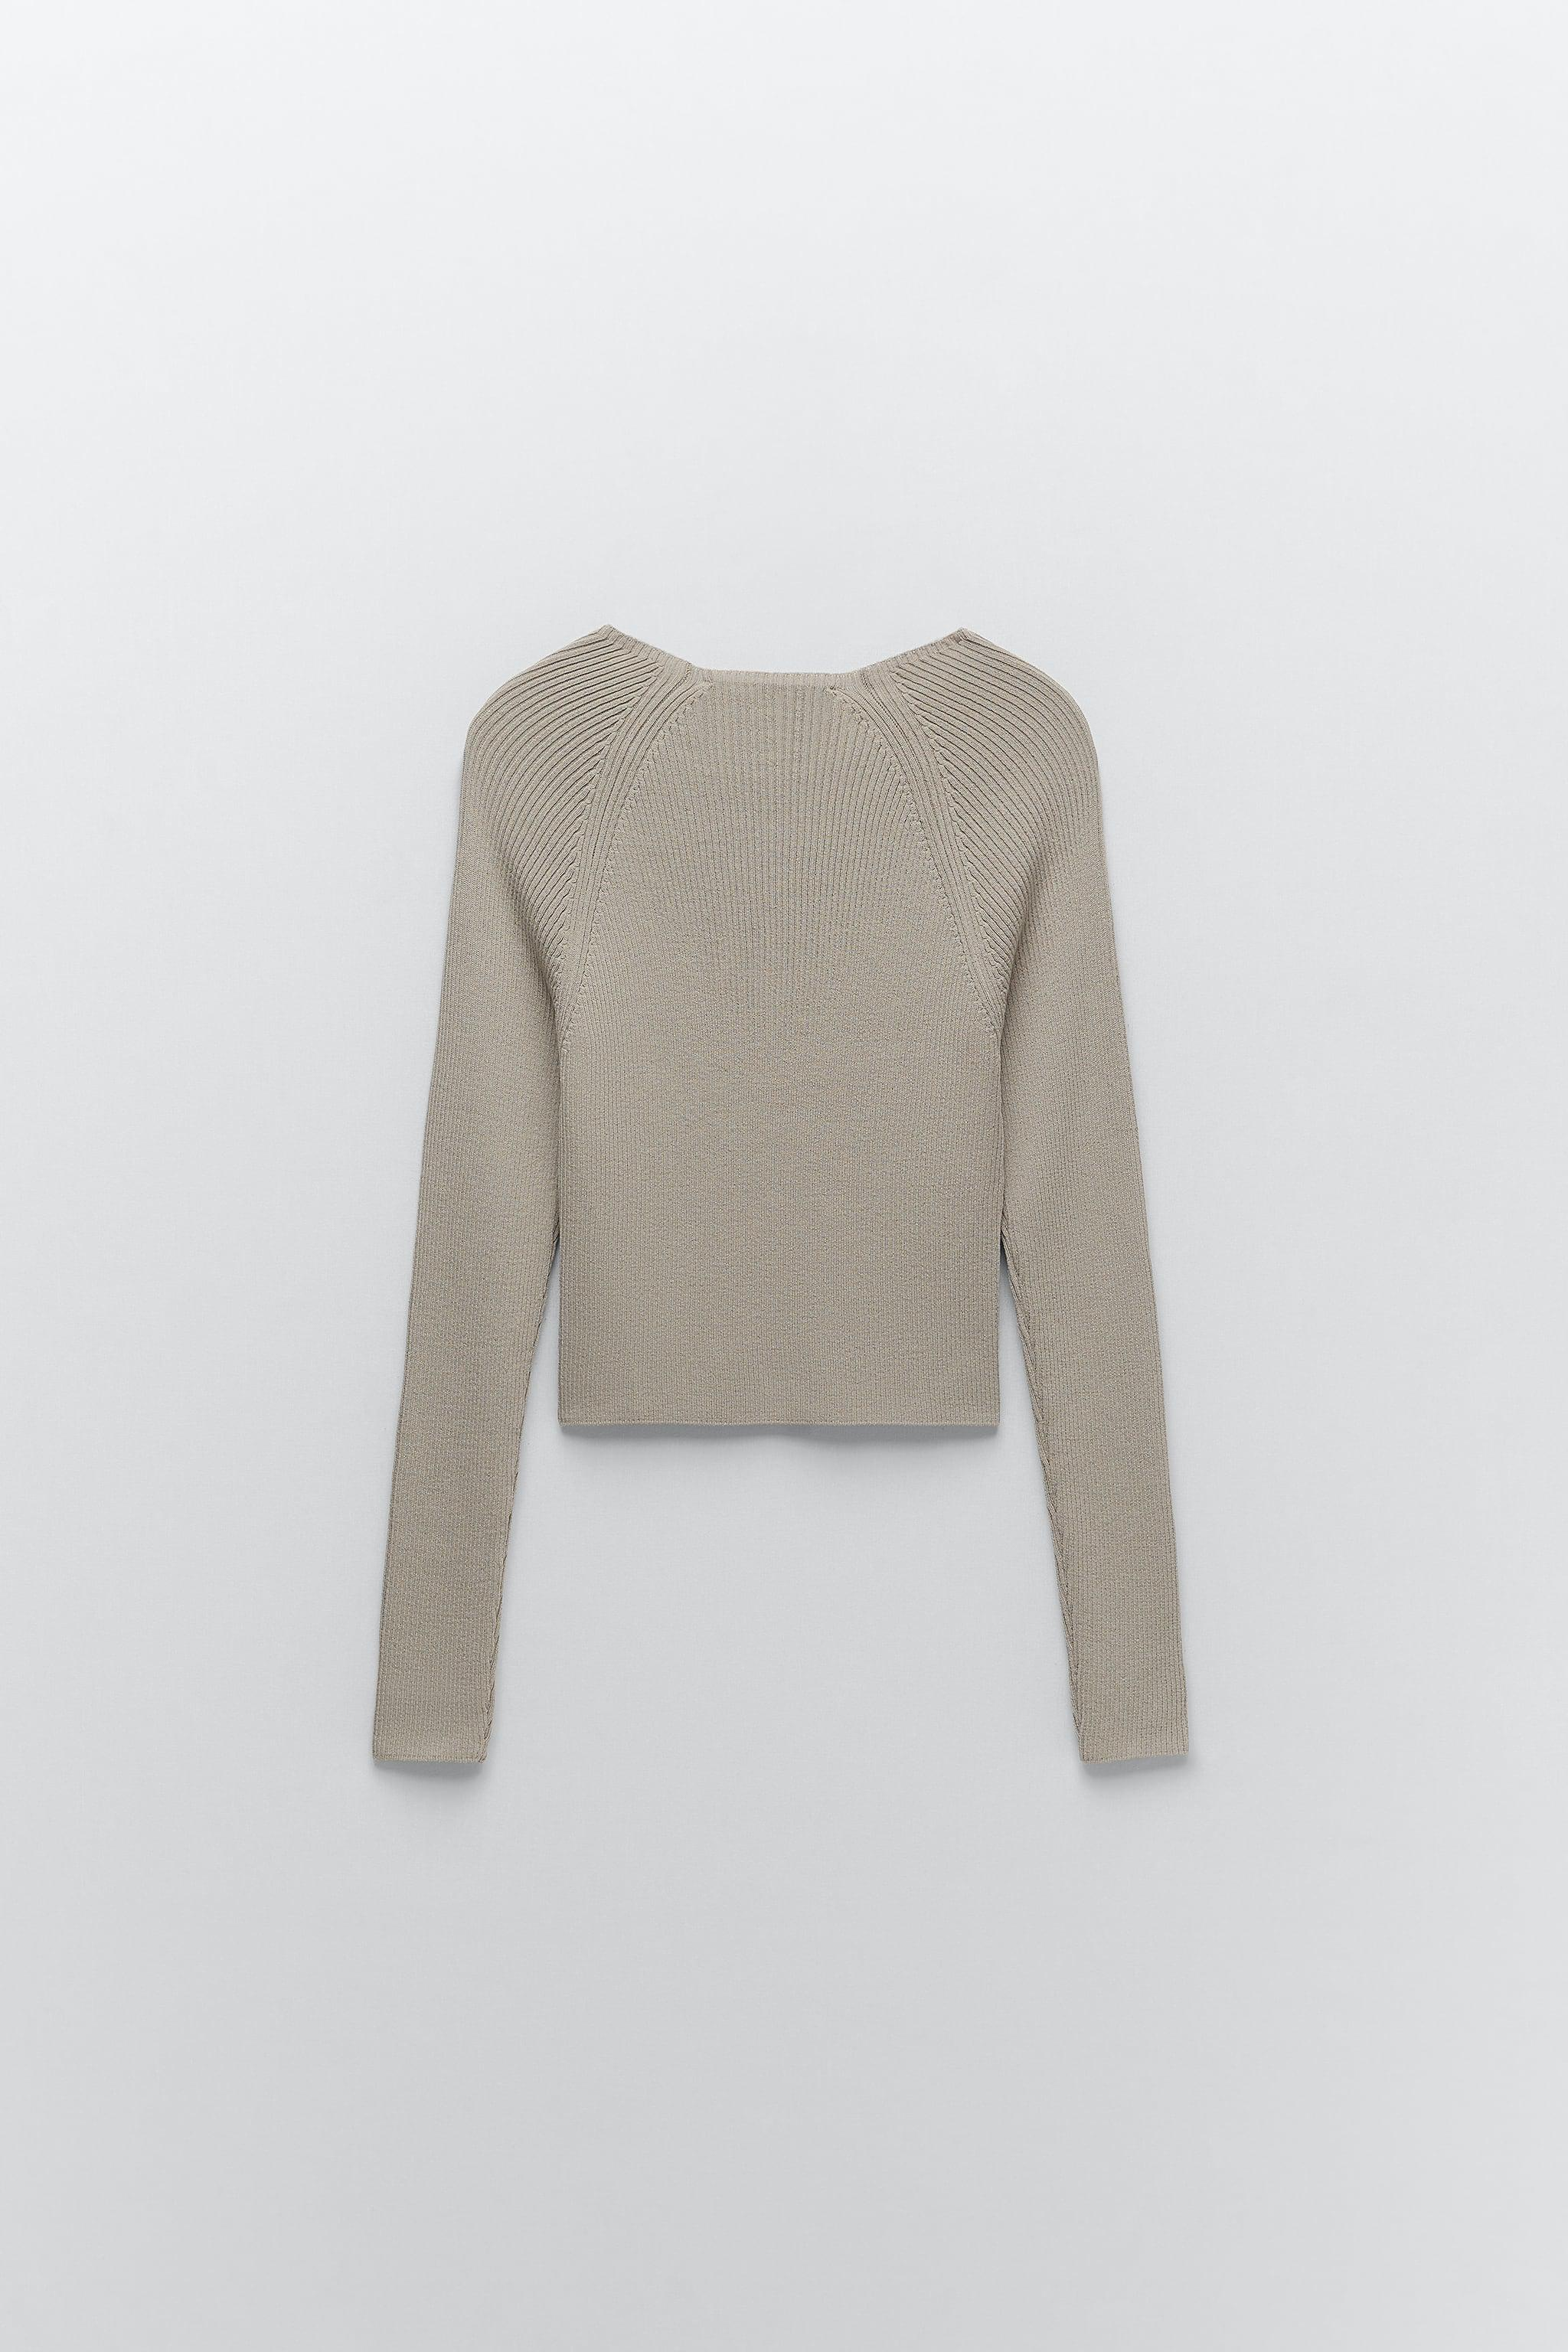 KNIT SWEATER WITH BUTTONS 3